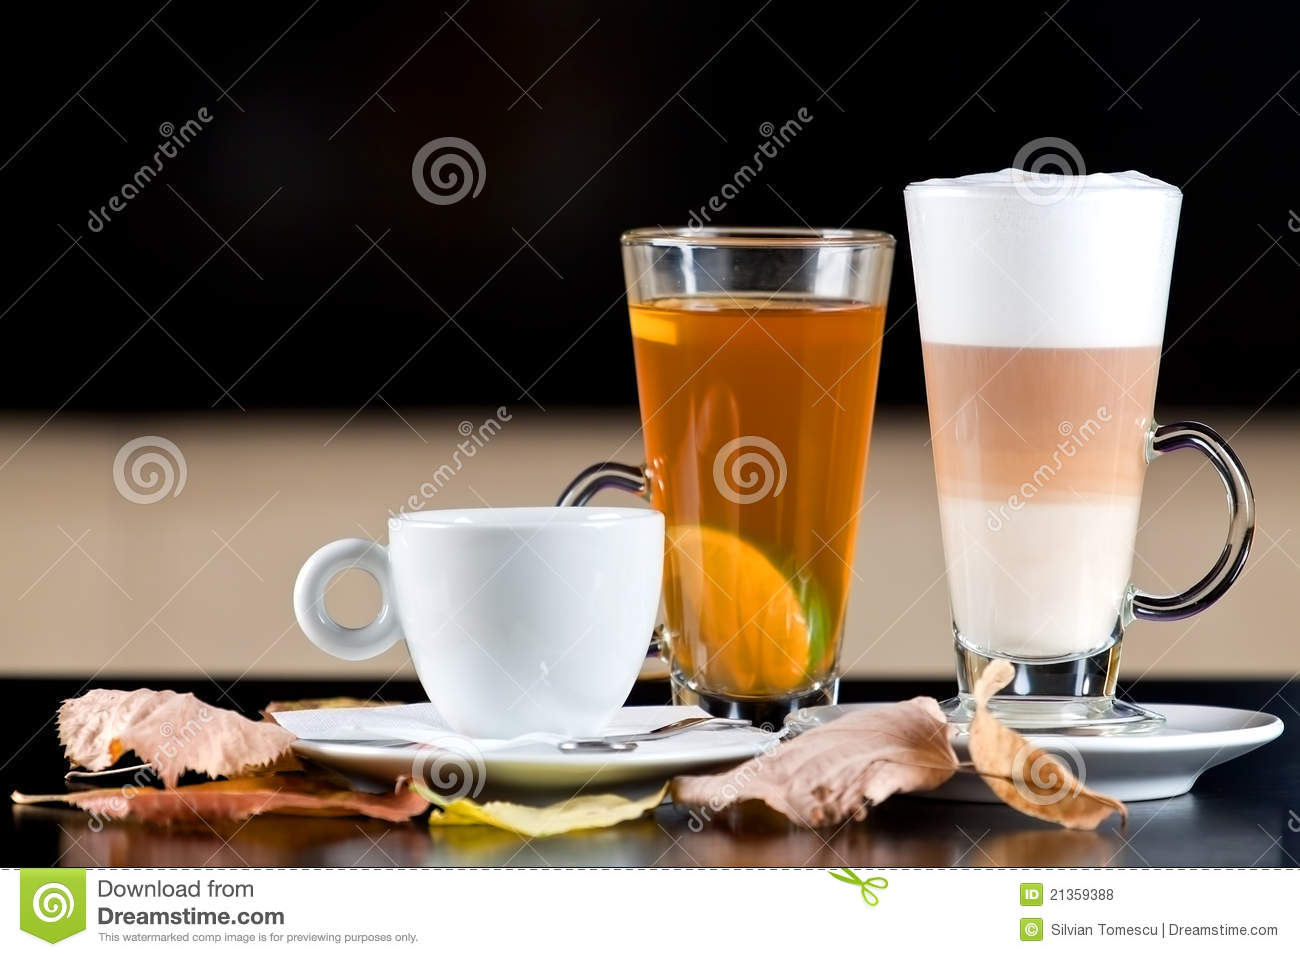 d3926686c83 Cup of coffee, glass of fruit tea and latte on black wood table with autumn  leaves. Selective focus and space for text in the left.